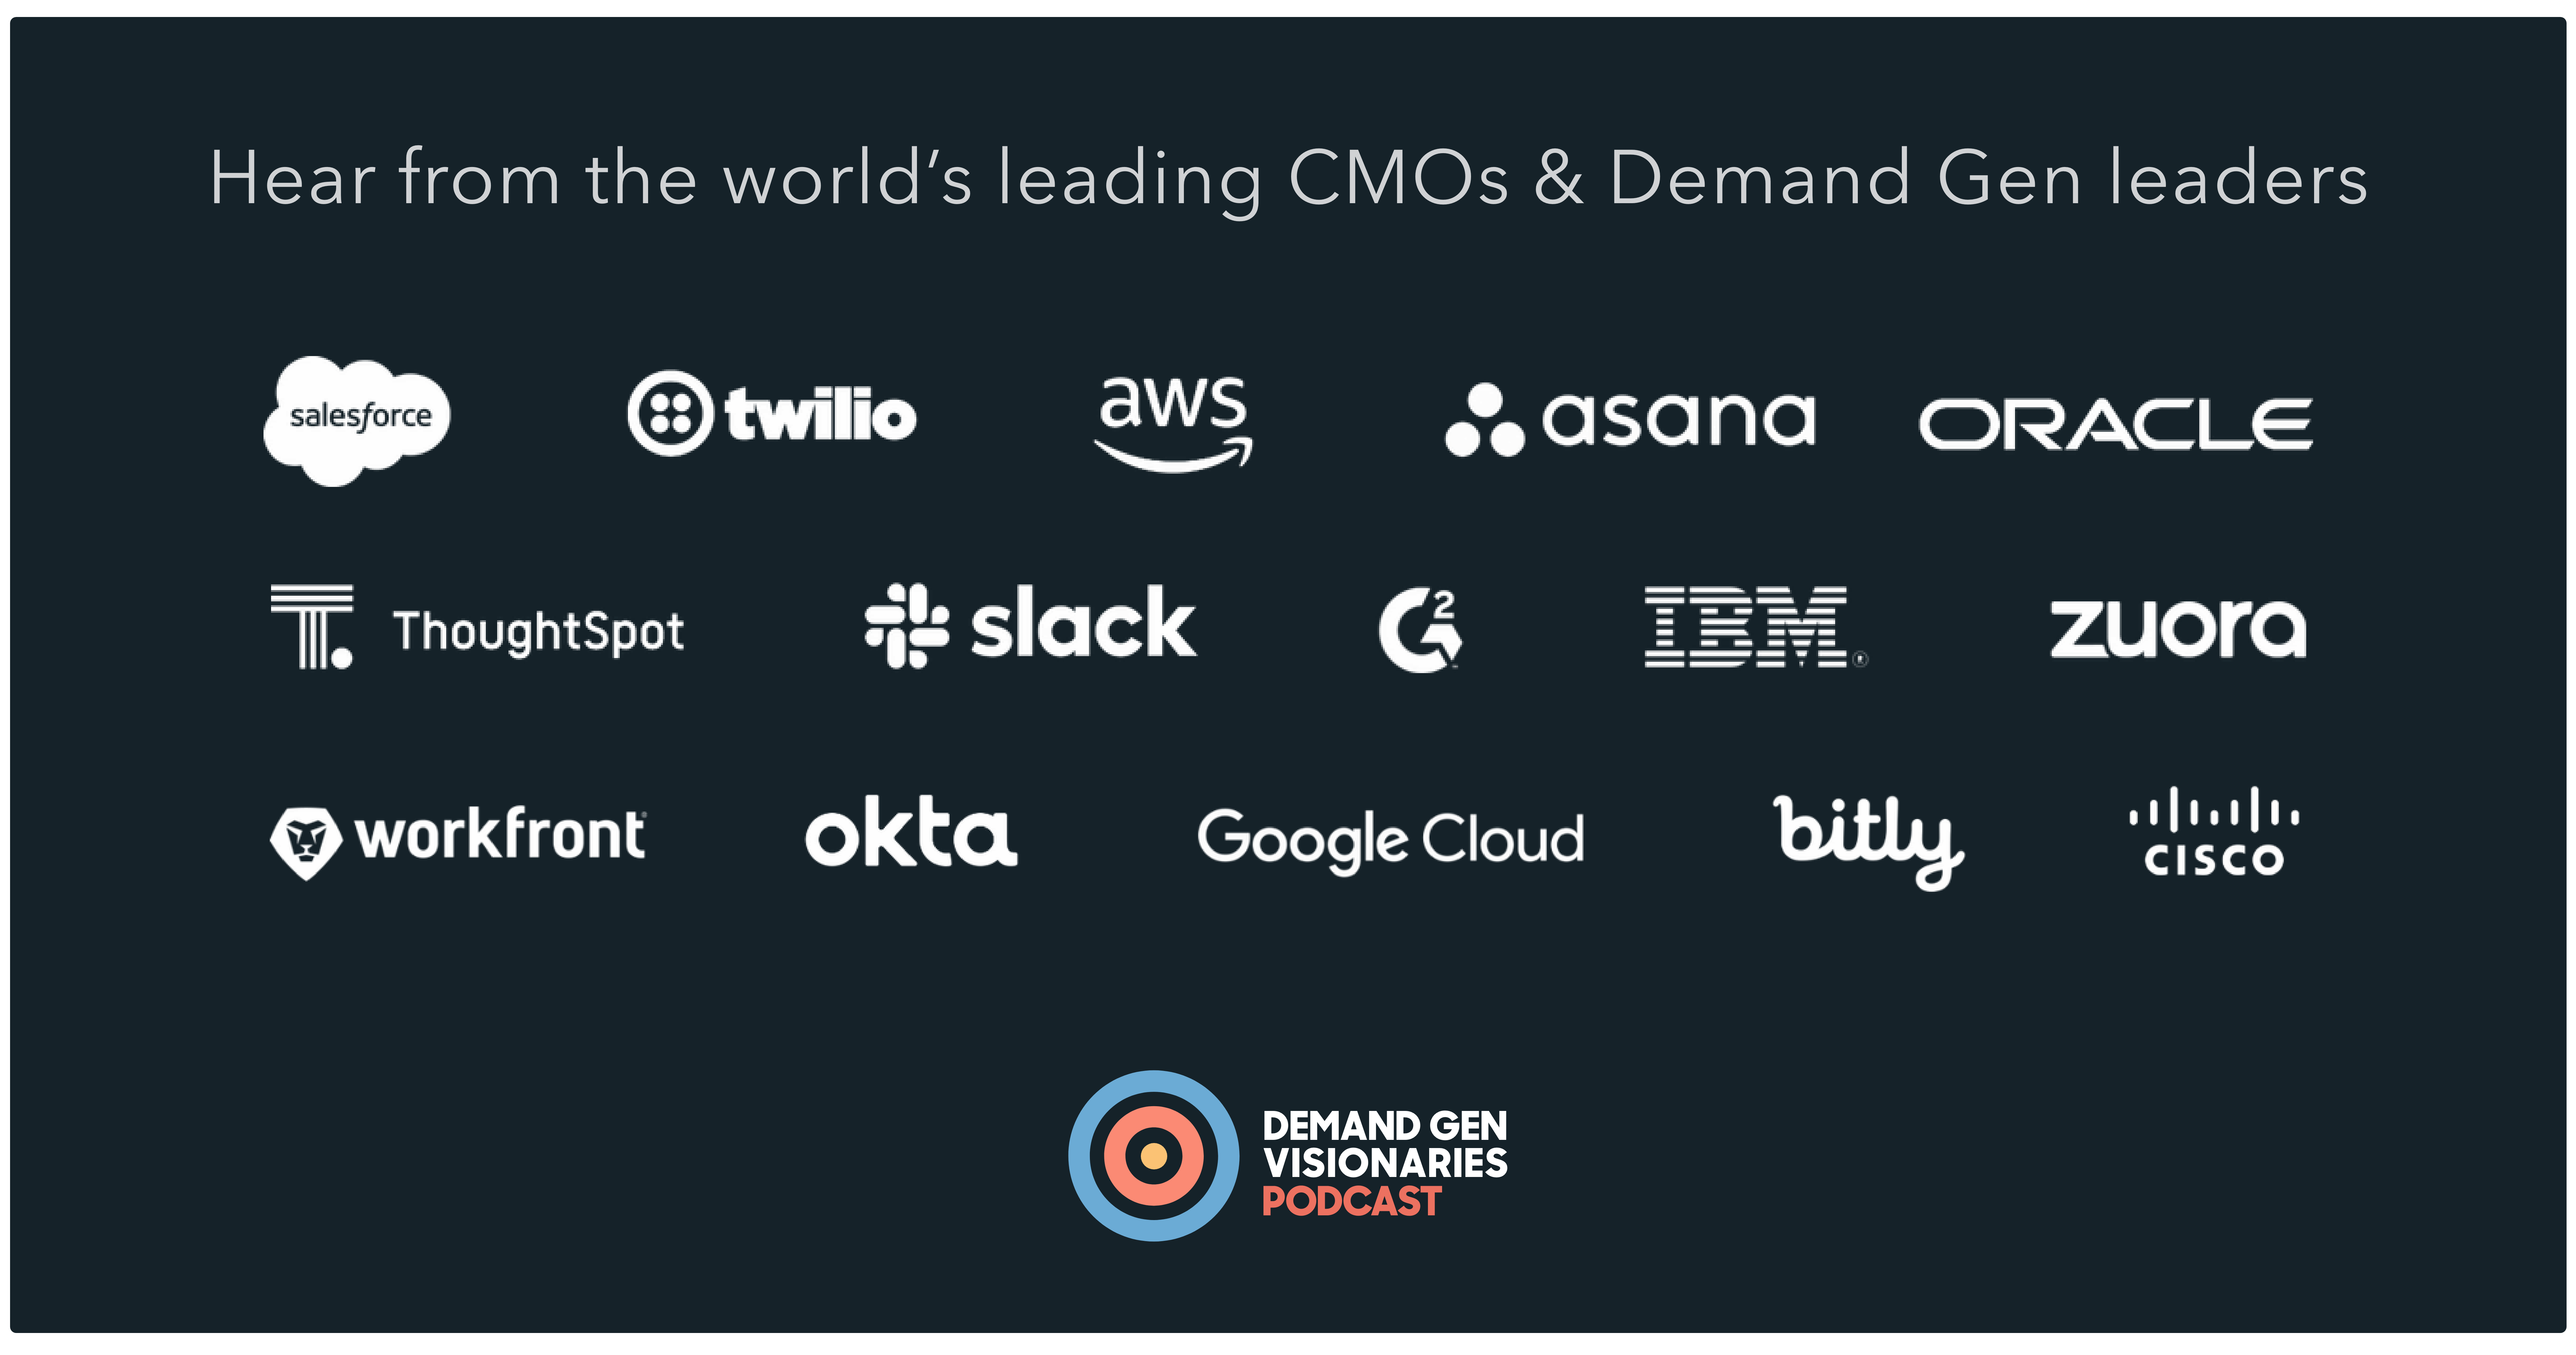 Demand Gen Visionaries Podcast: Hear from CMOs and Demand Gen Leaders at the World's Leading Brands